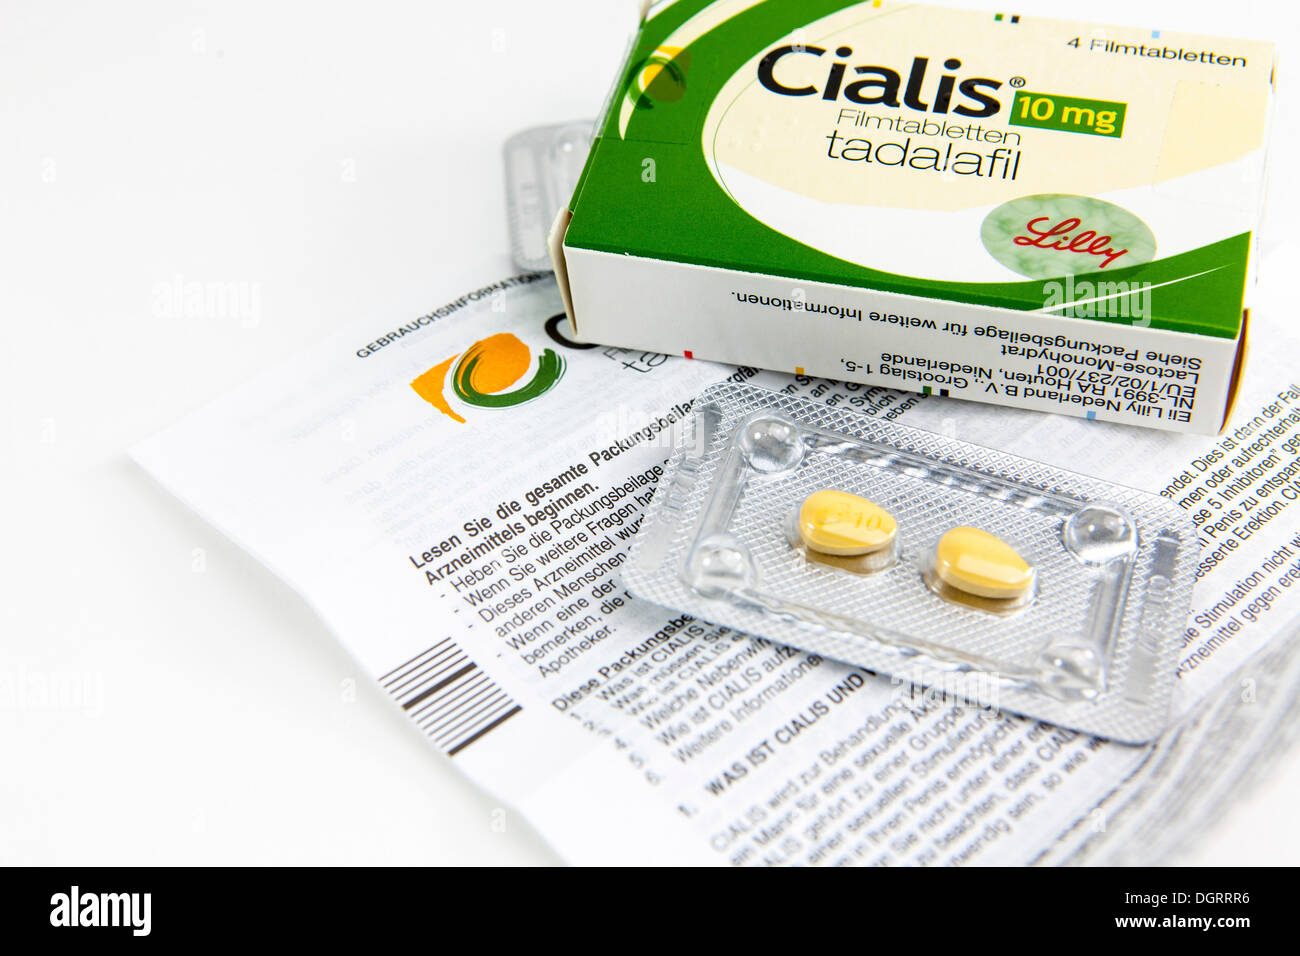 Cialis tablets for increasing virility - Stock Image